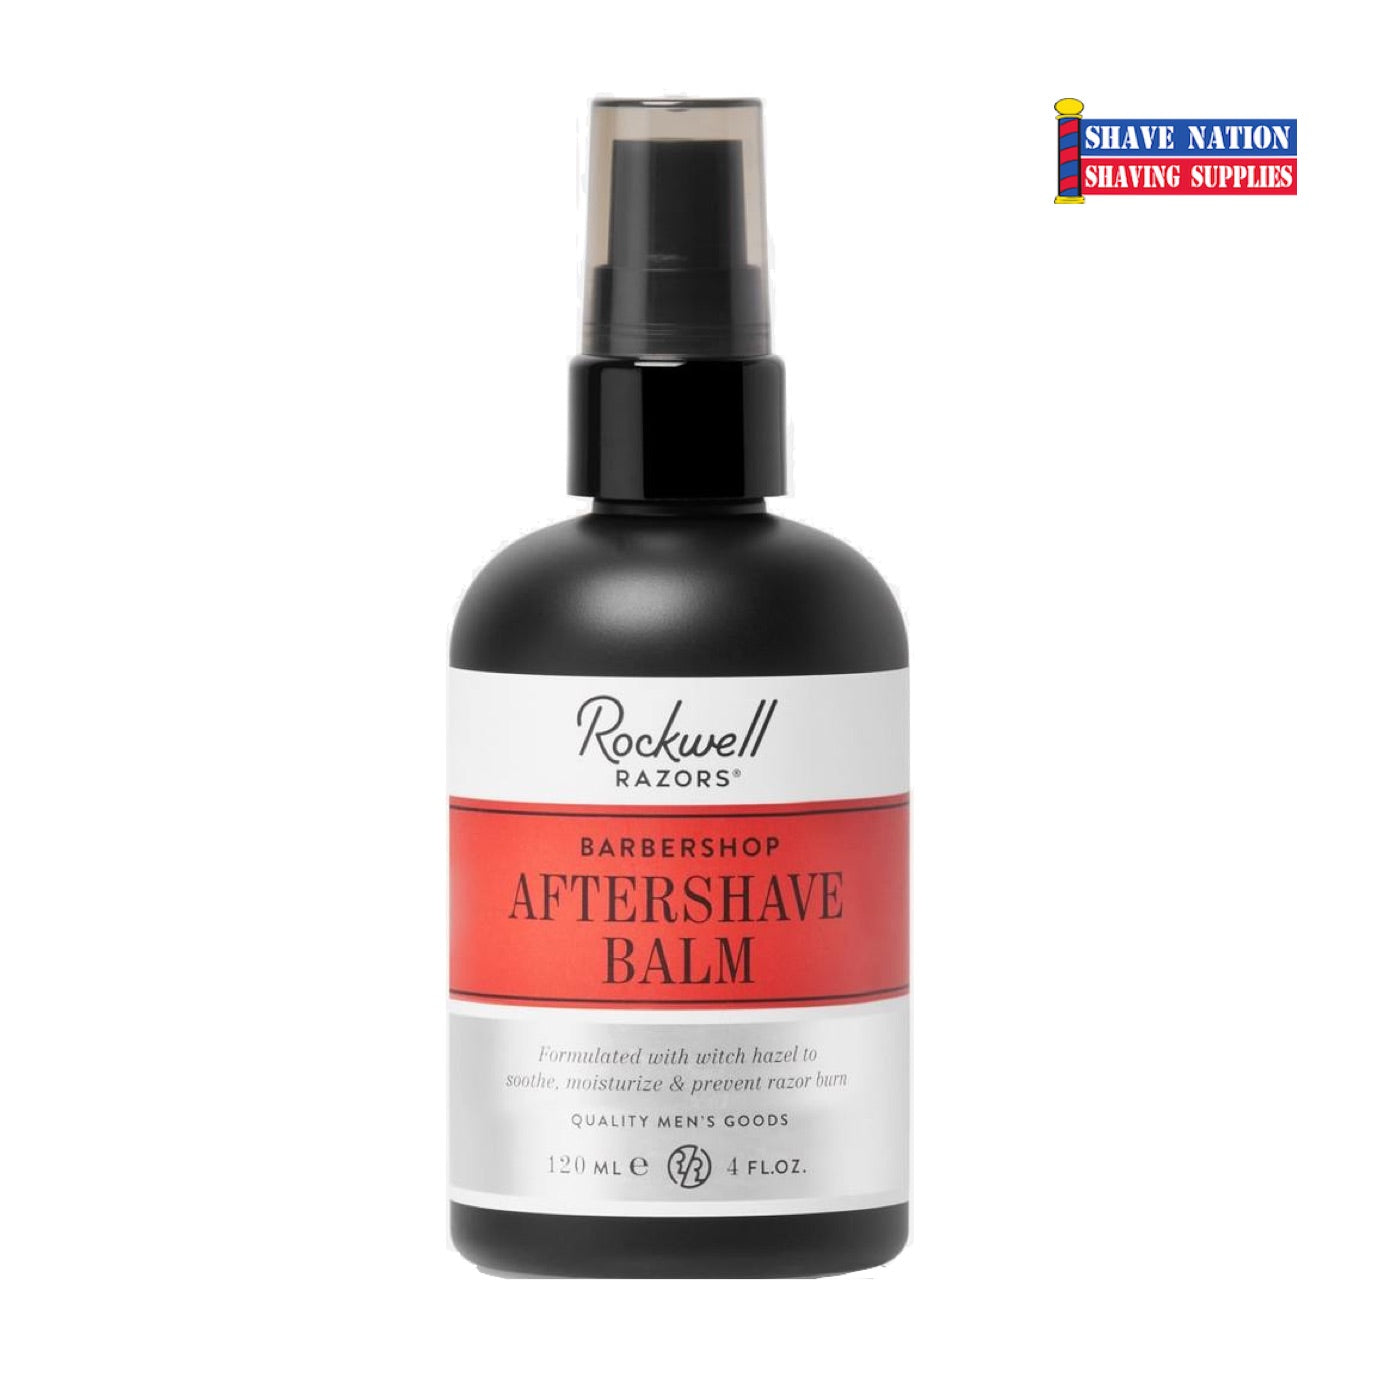 Rockwell AfterShave Balm Barber Shop Scent